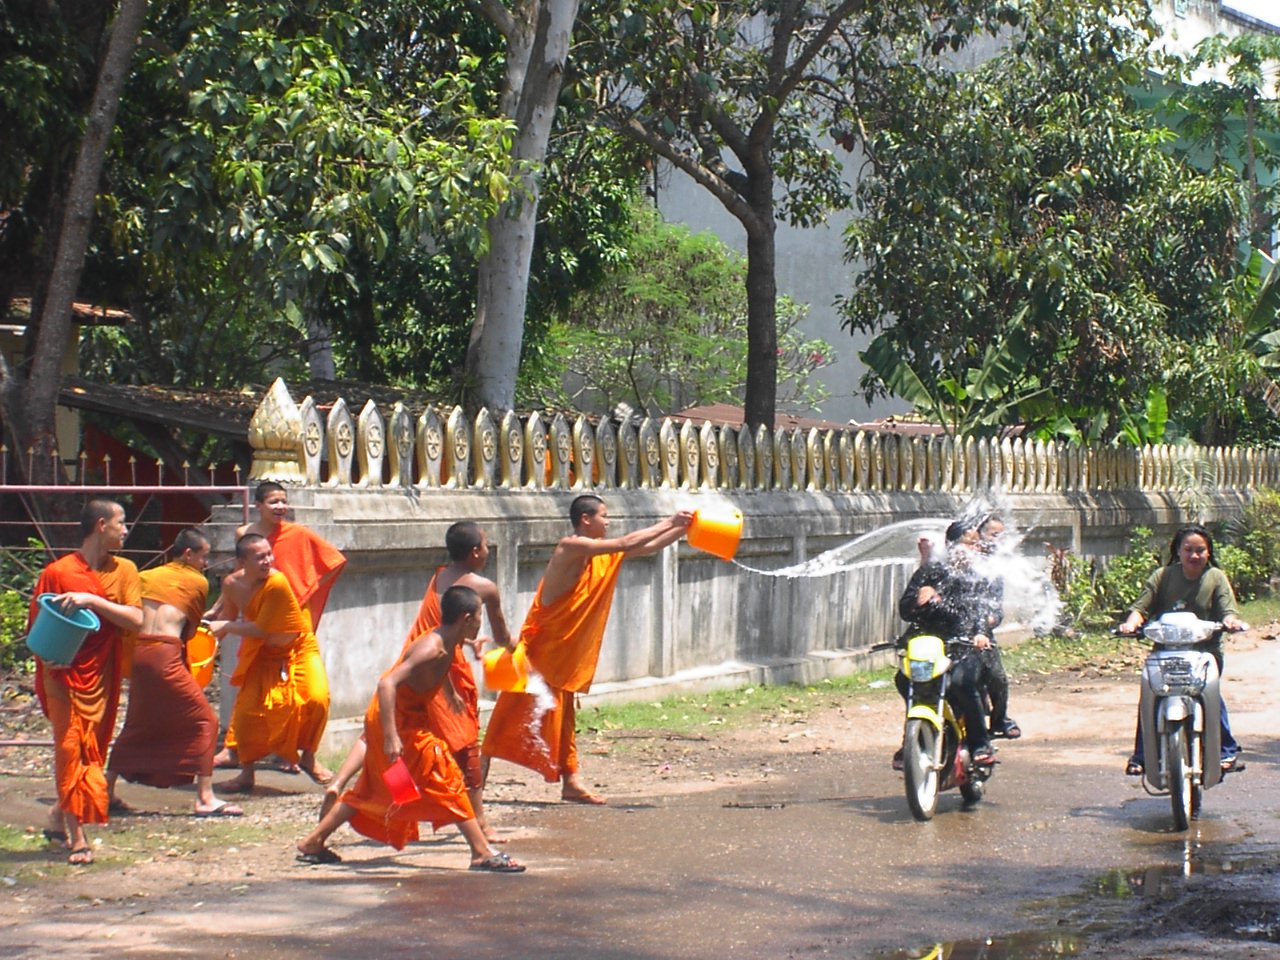 Water throwing in New Year Festival. Monks also enjoy it!